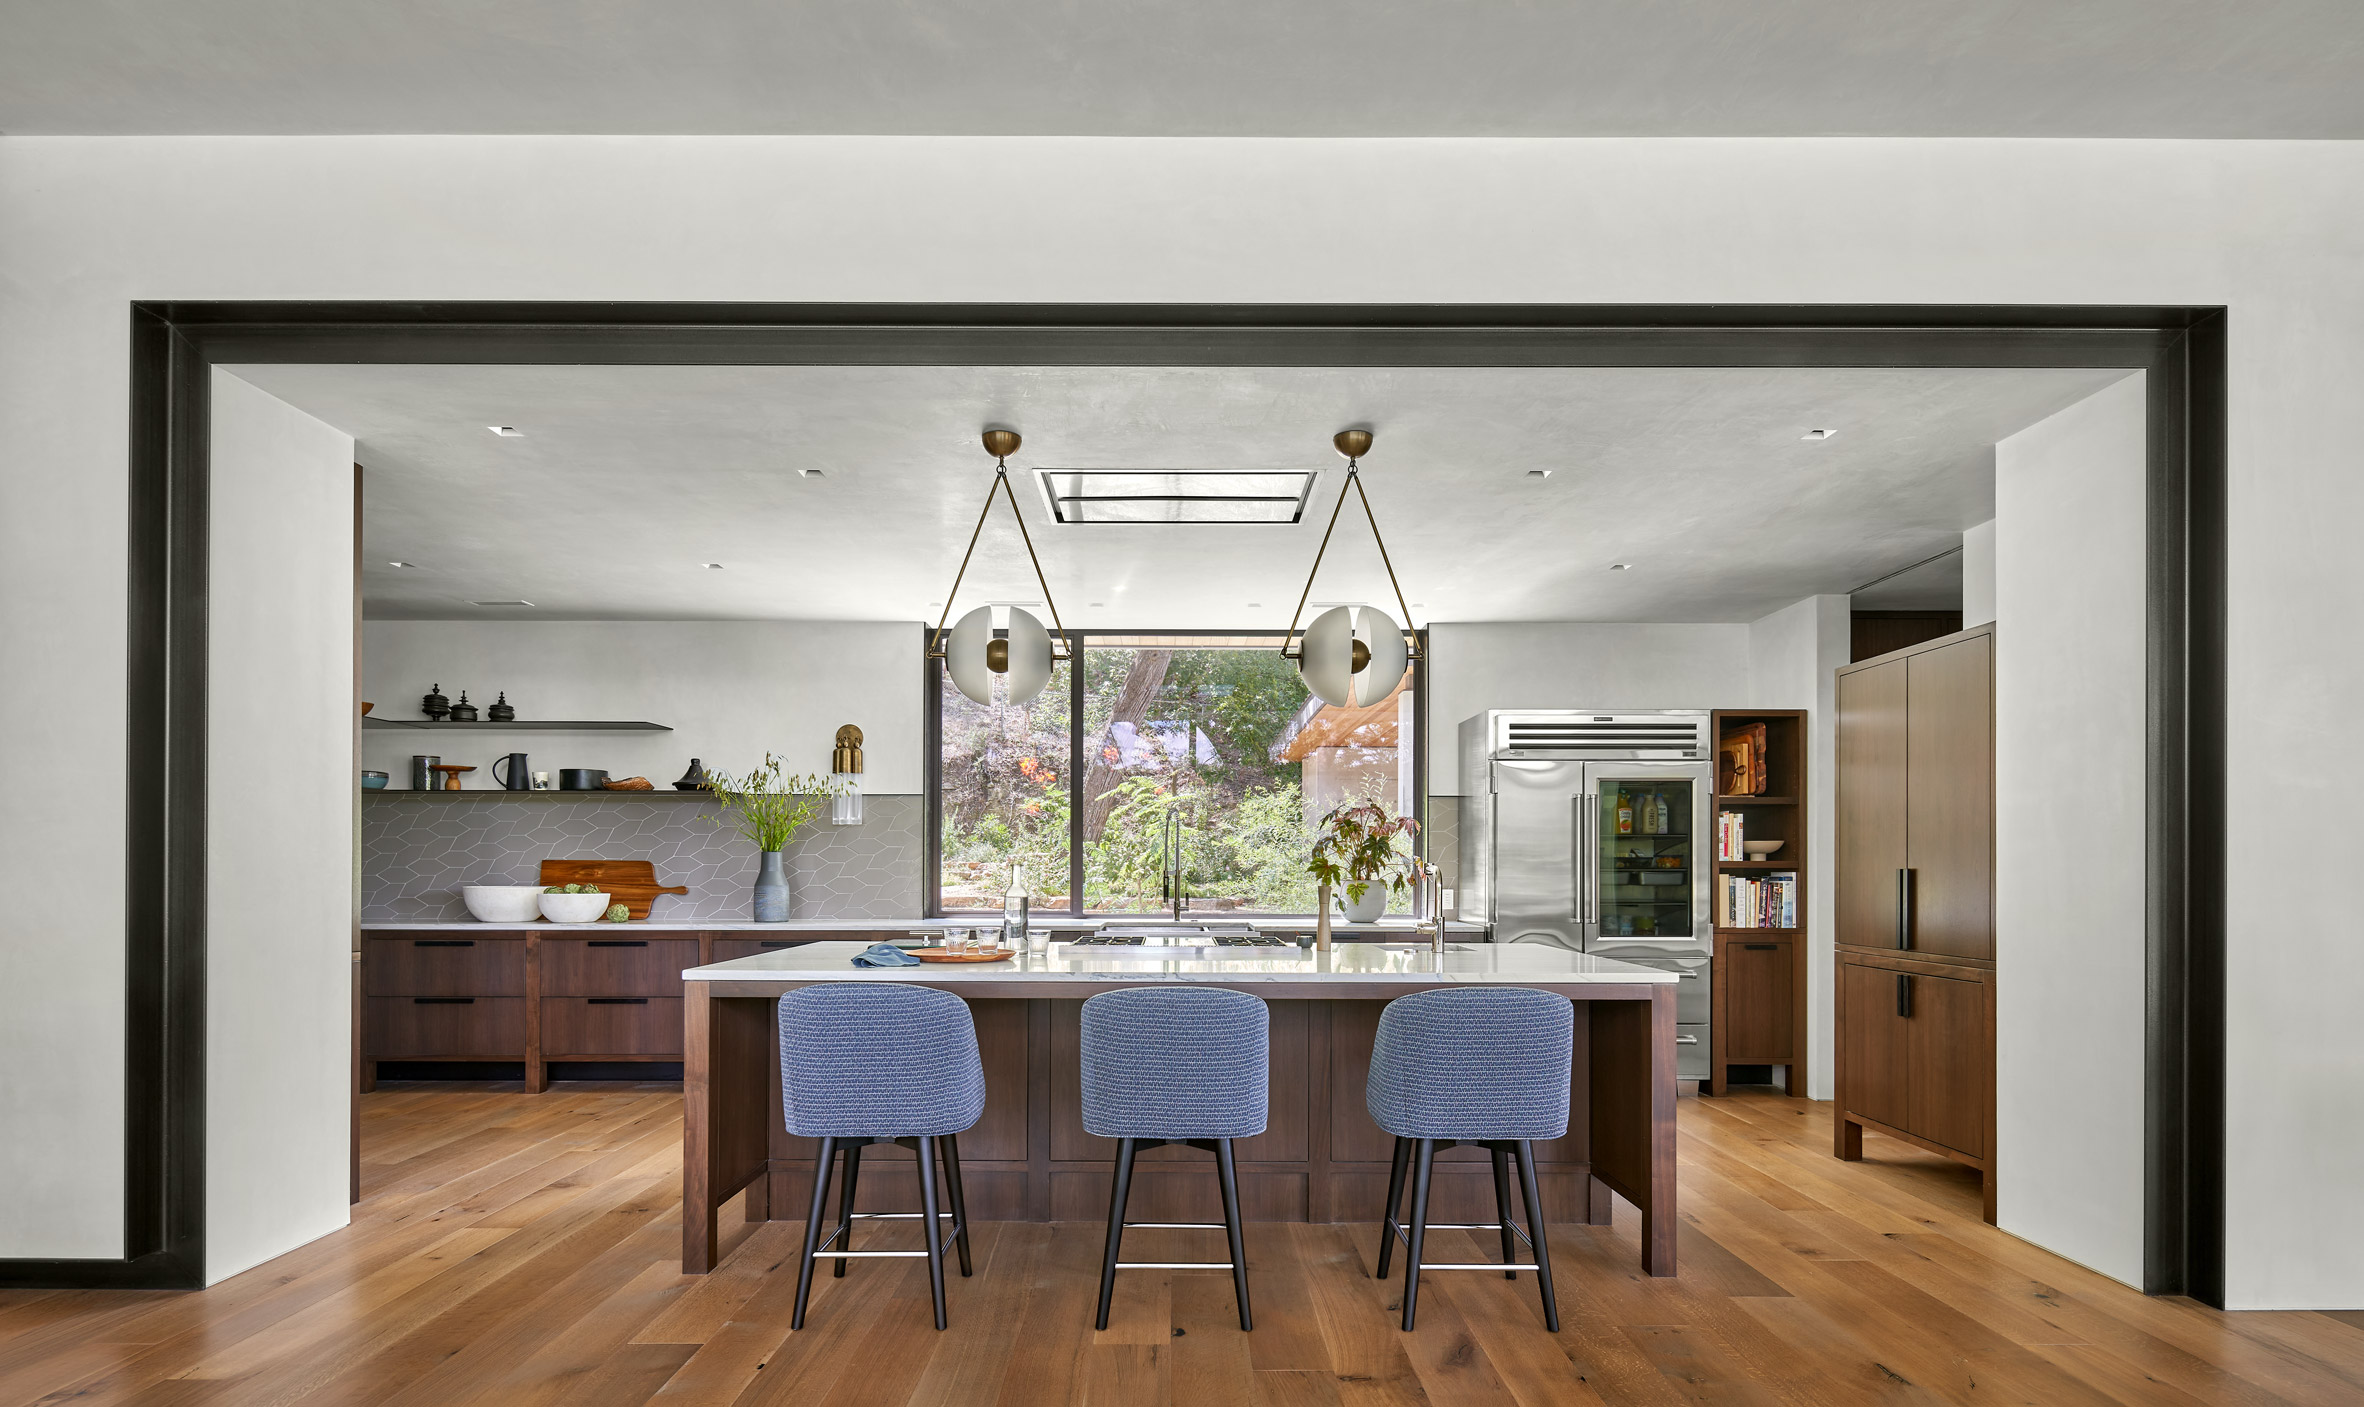 The Ski Slope Residence is bright and airy